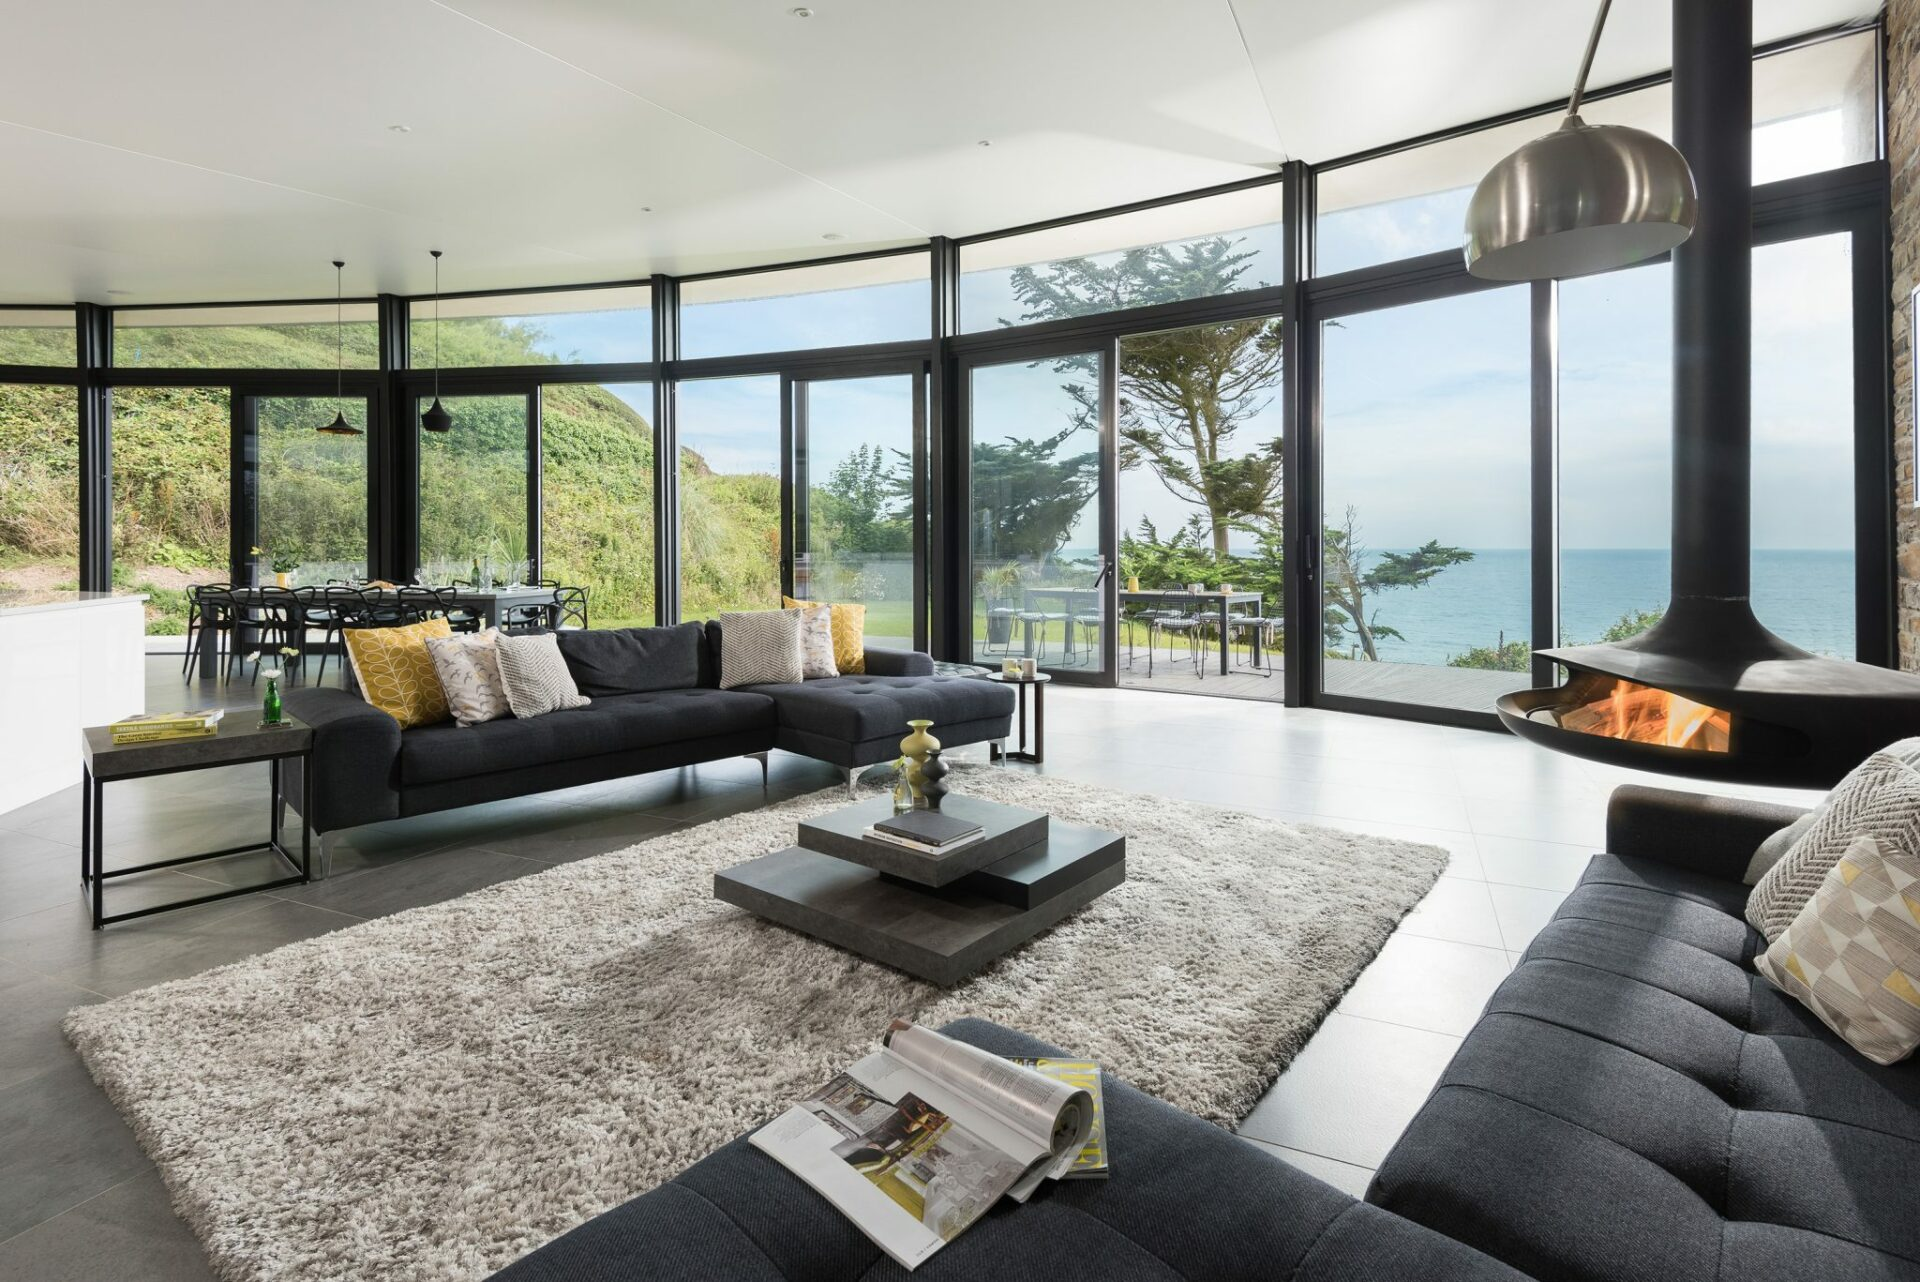 Sustainable new build designed by Arco2 Architects in Cornwall